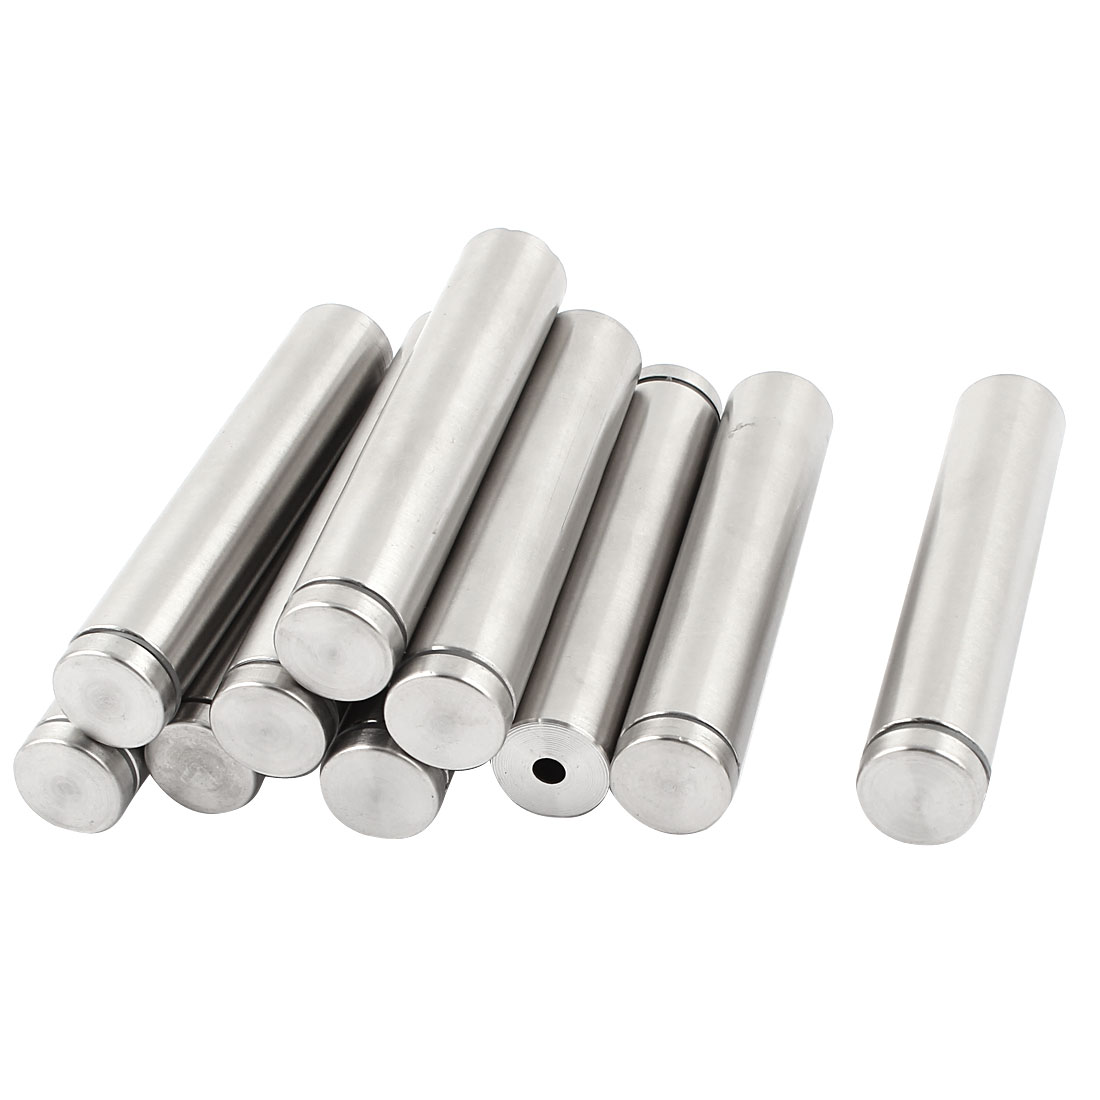 "10 Pcs 0.7"" Dia 3.9"" Length Round Stainless Steel Standoff for Glass Hardware"